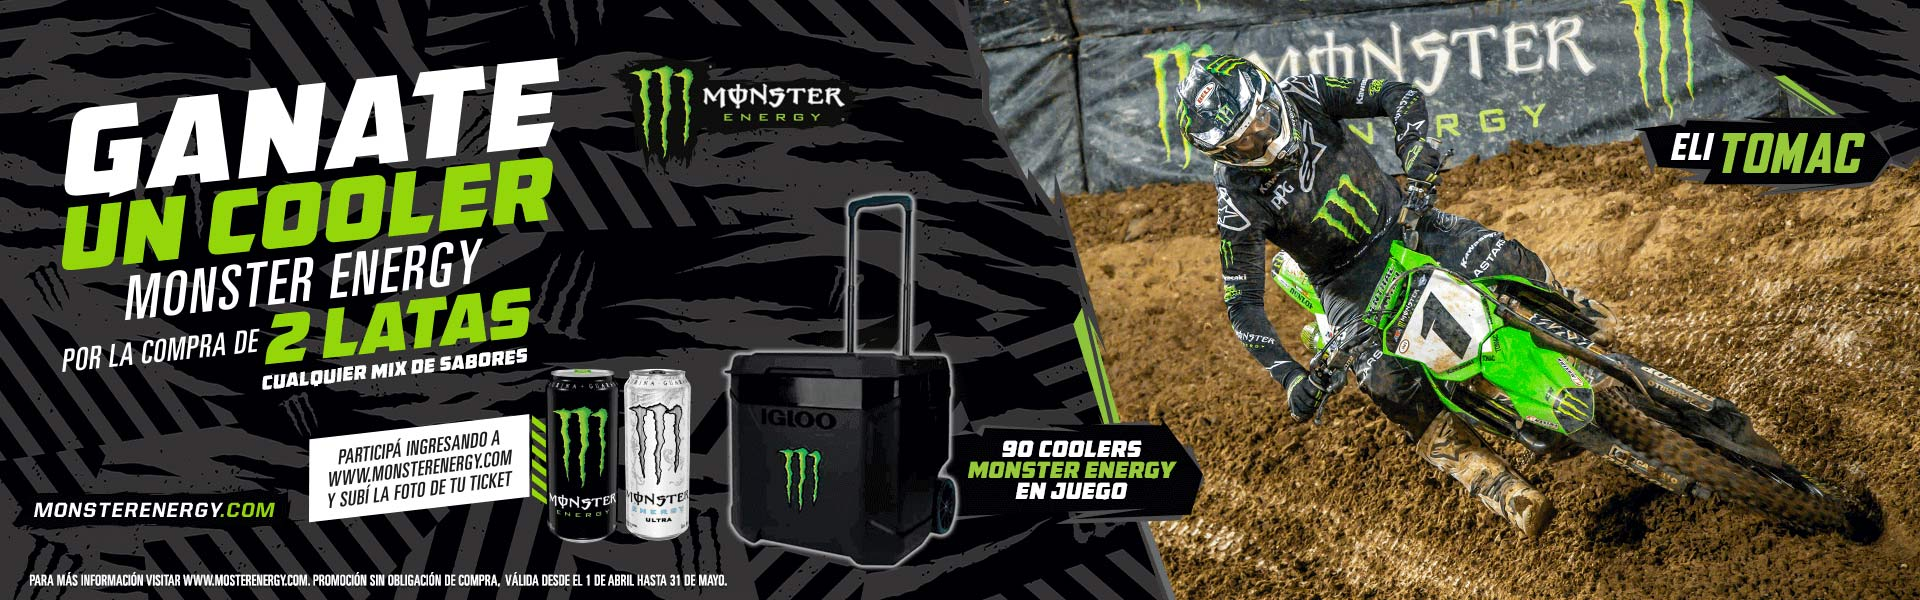 MONSTER ENERGY----------------------------------d-coleccion